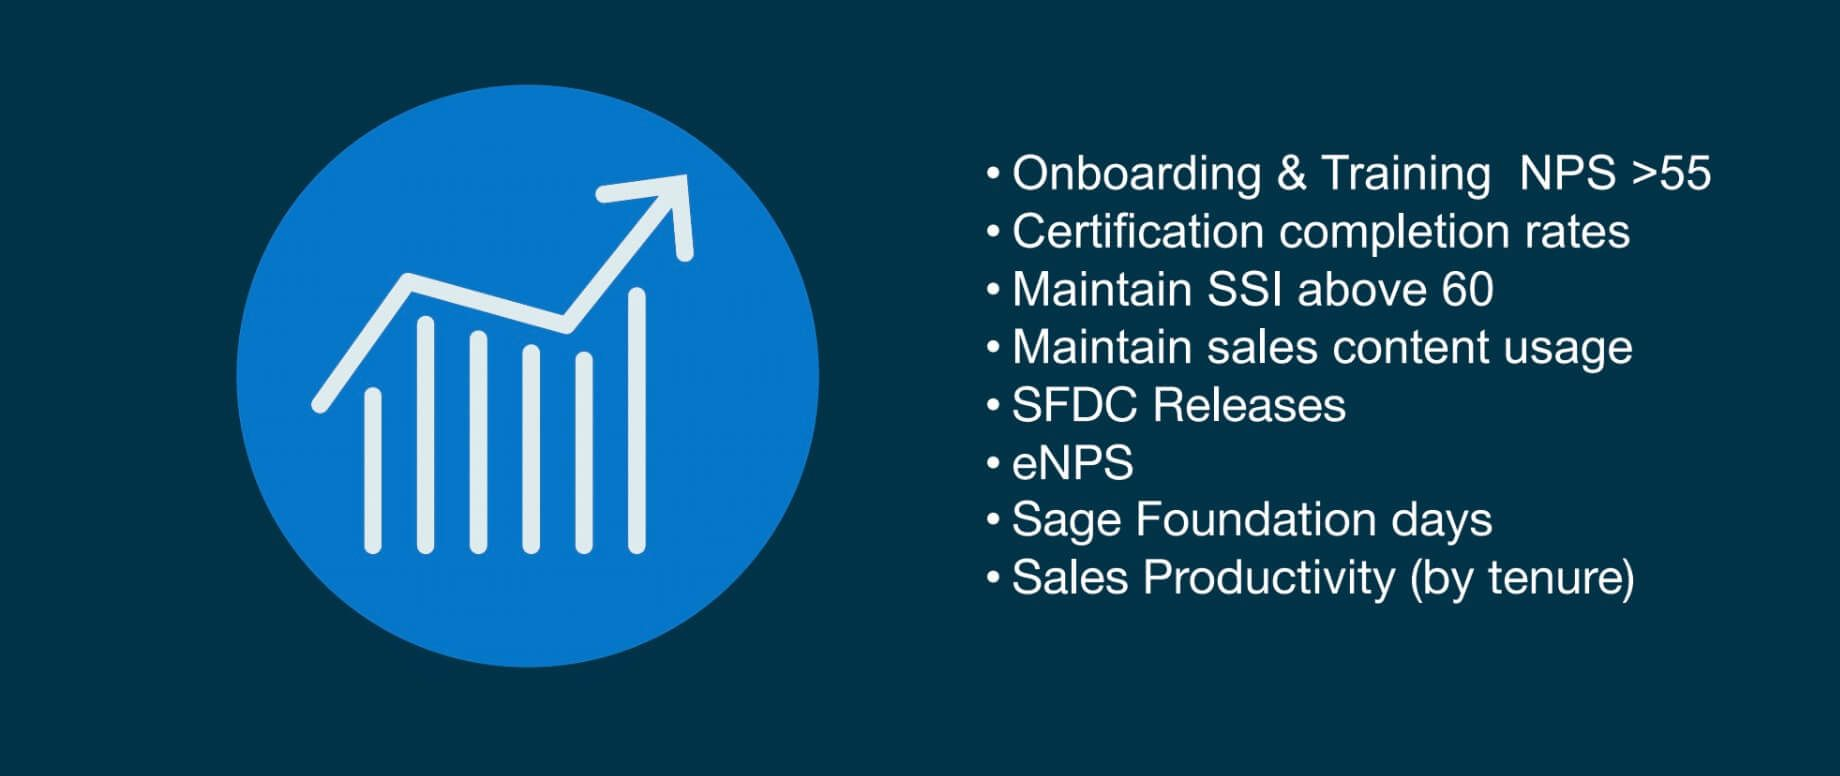 Onboarding & Training, NPS > 55, certification completion rates, maintain SSI above 60, maintain sales content usage